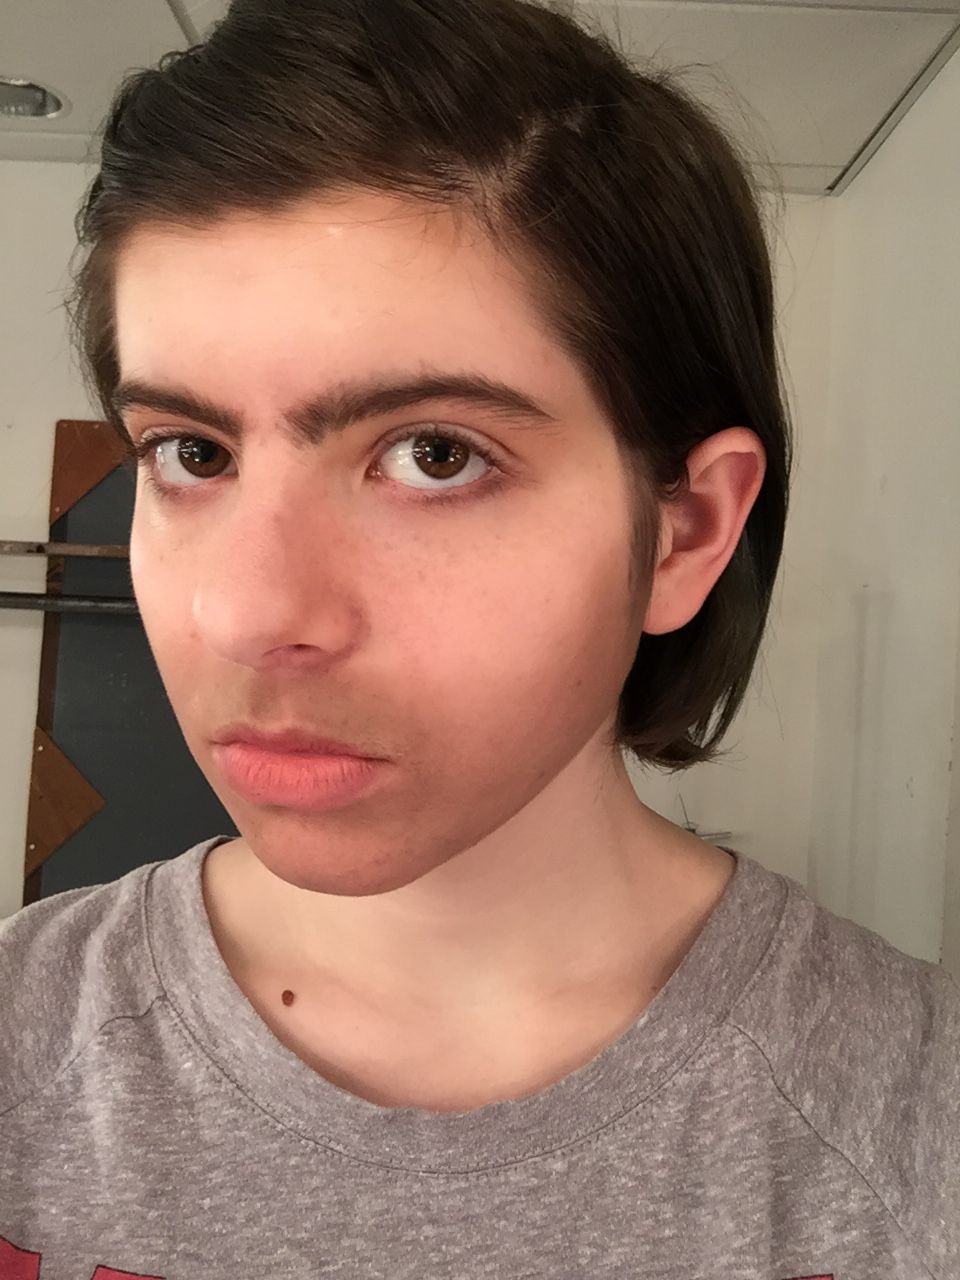 My gender transformation look- the five o'clock shadow is a little TOO blended, but I loved the eyebrows and sideburns that I did!